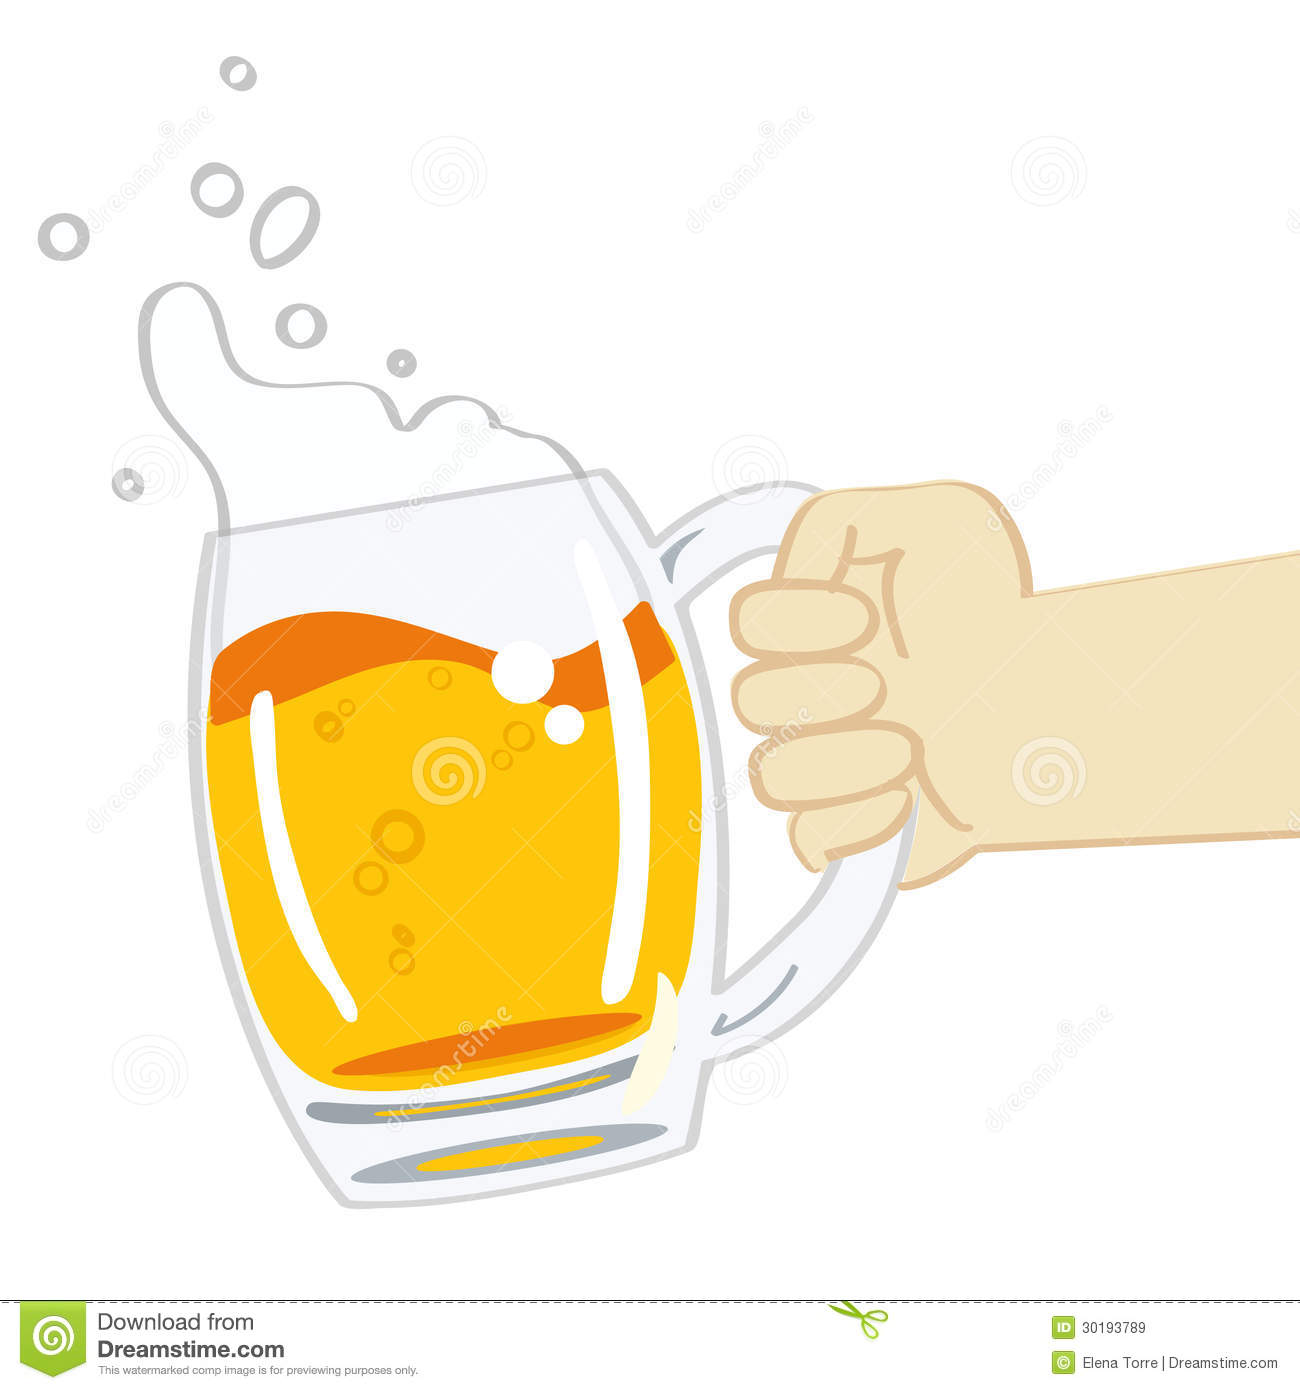 Hand holding a mug of beer - vector illustration on white background.